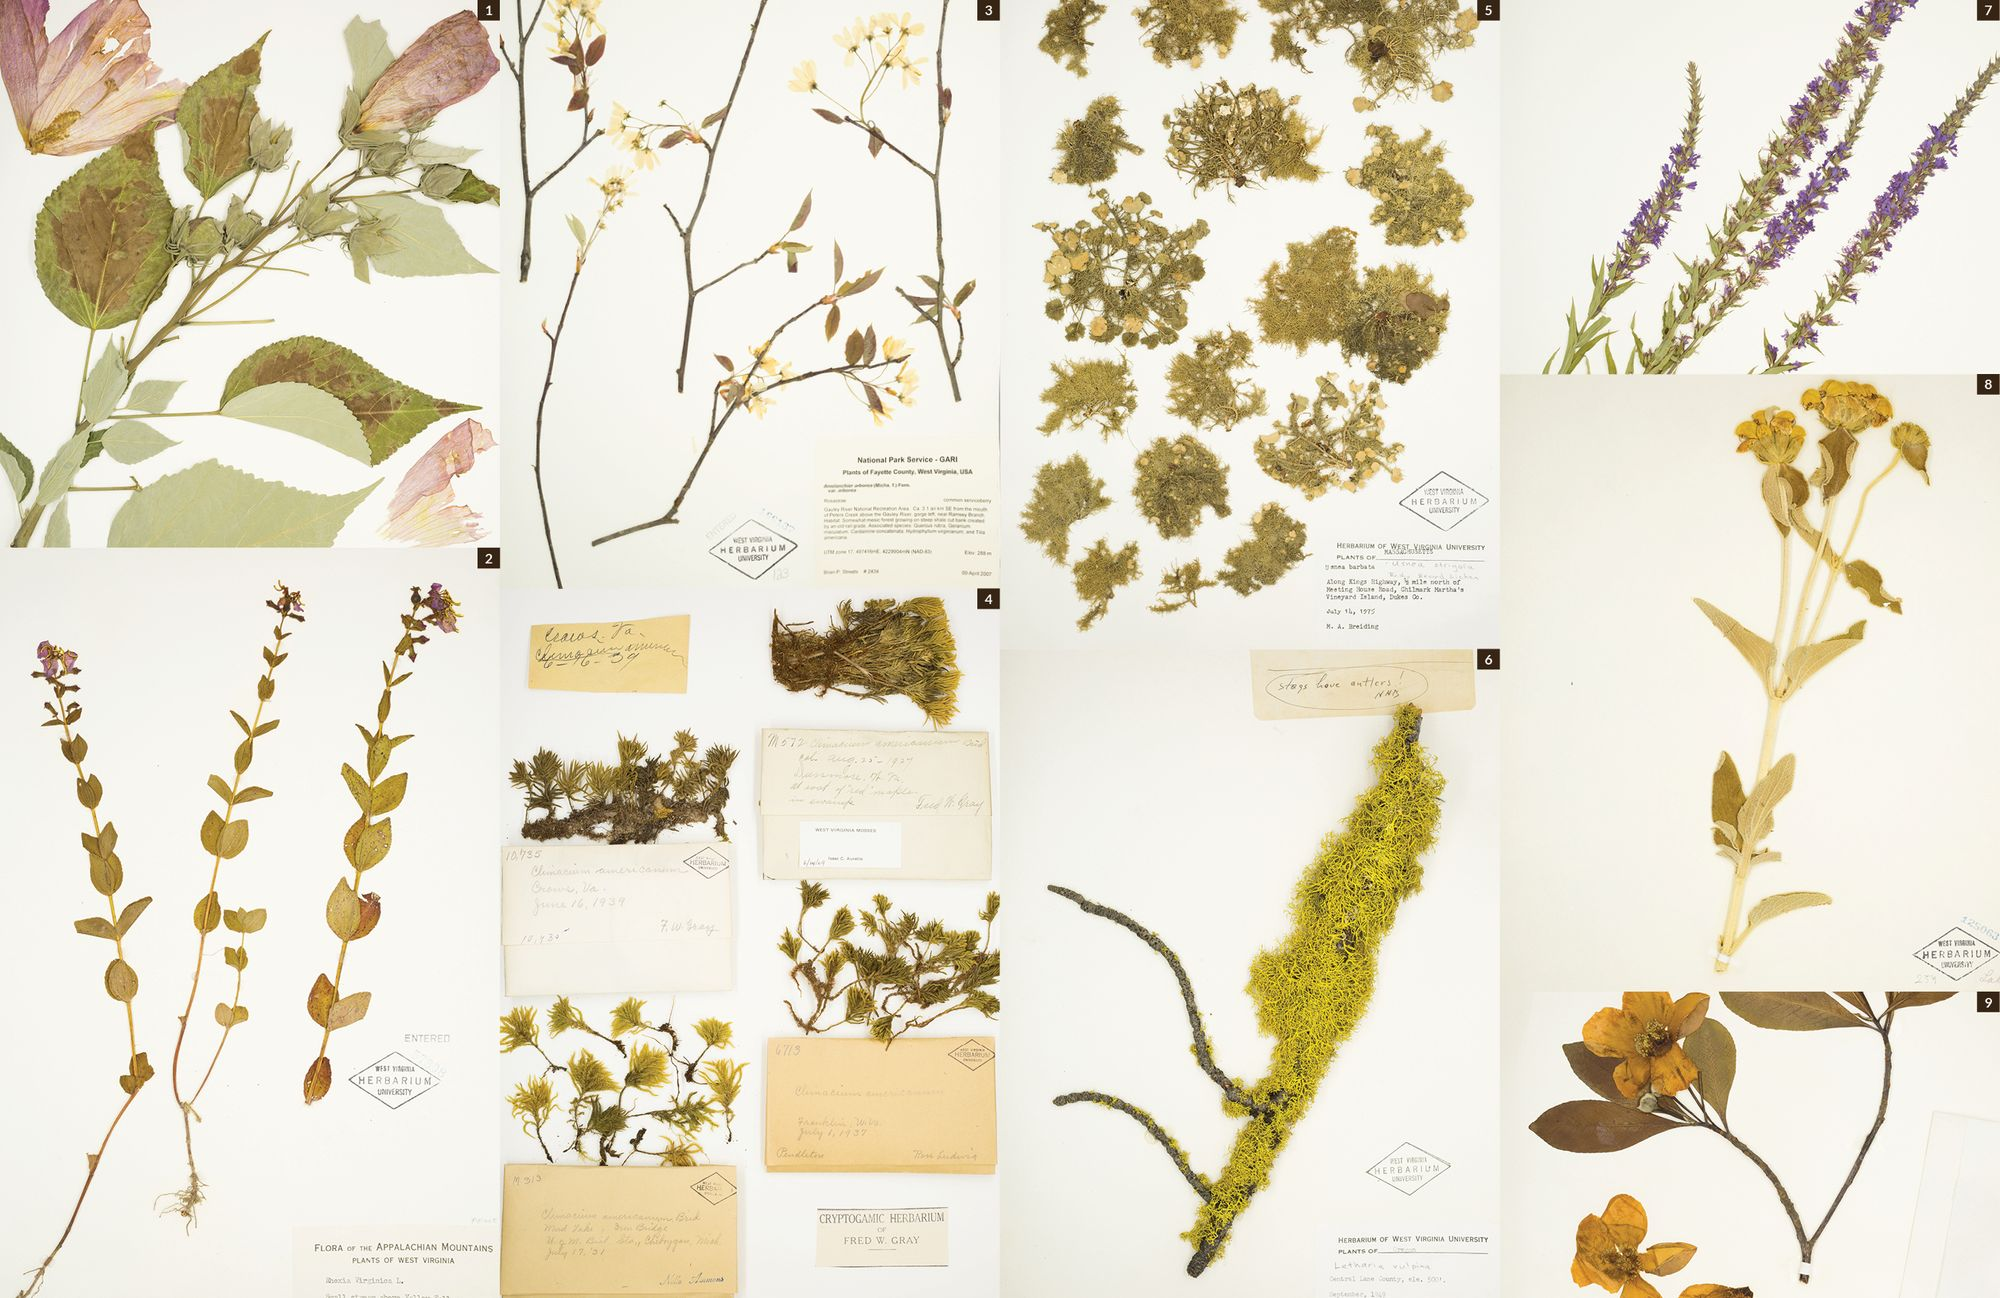 Plants in the herbarium collection.